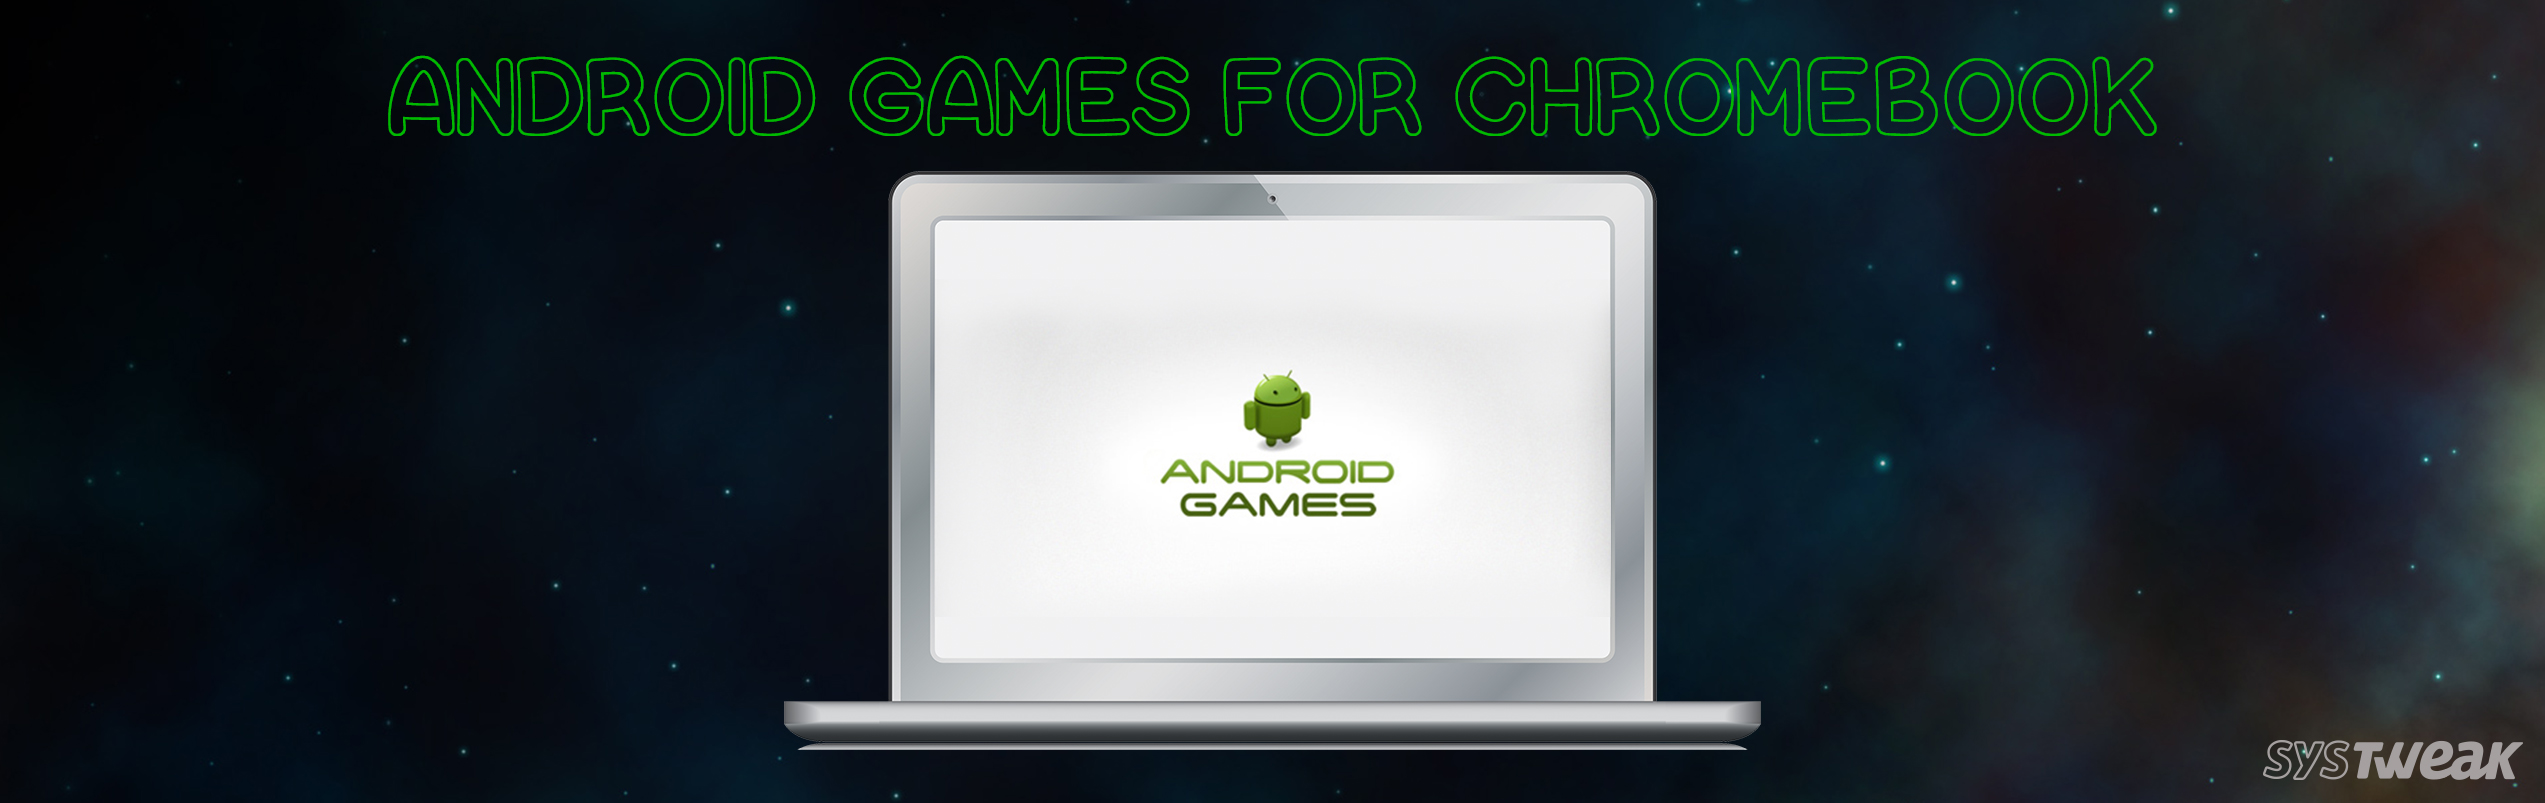 6 Best Android Games For Chromebook 2018